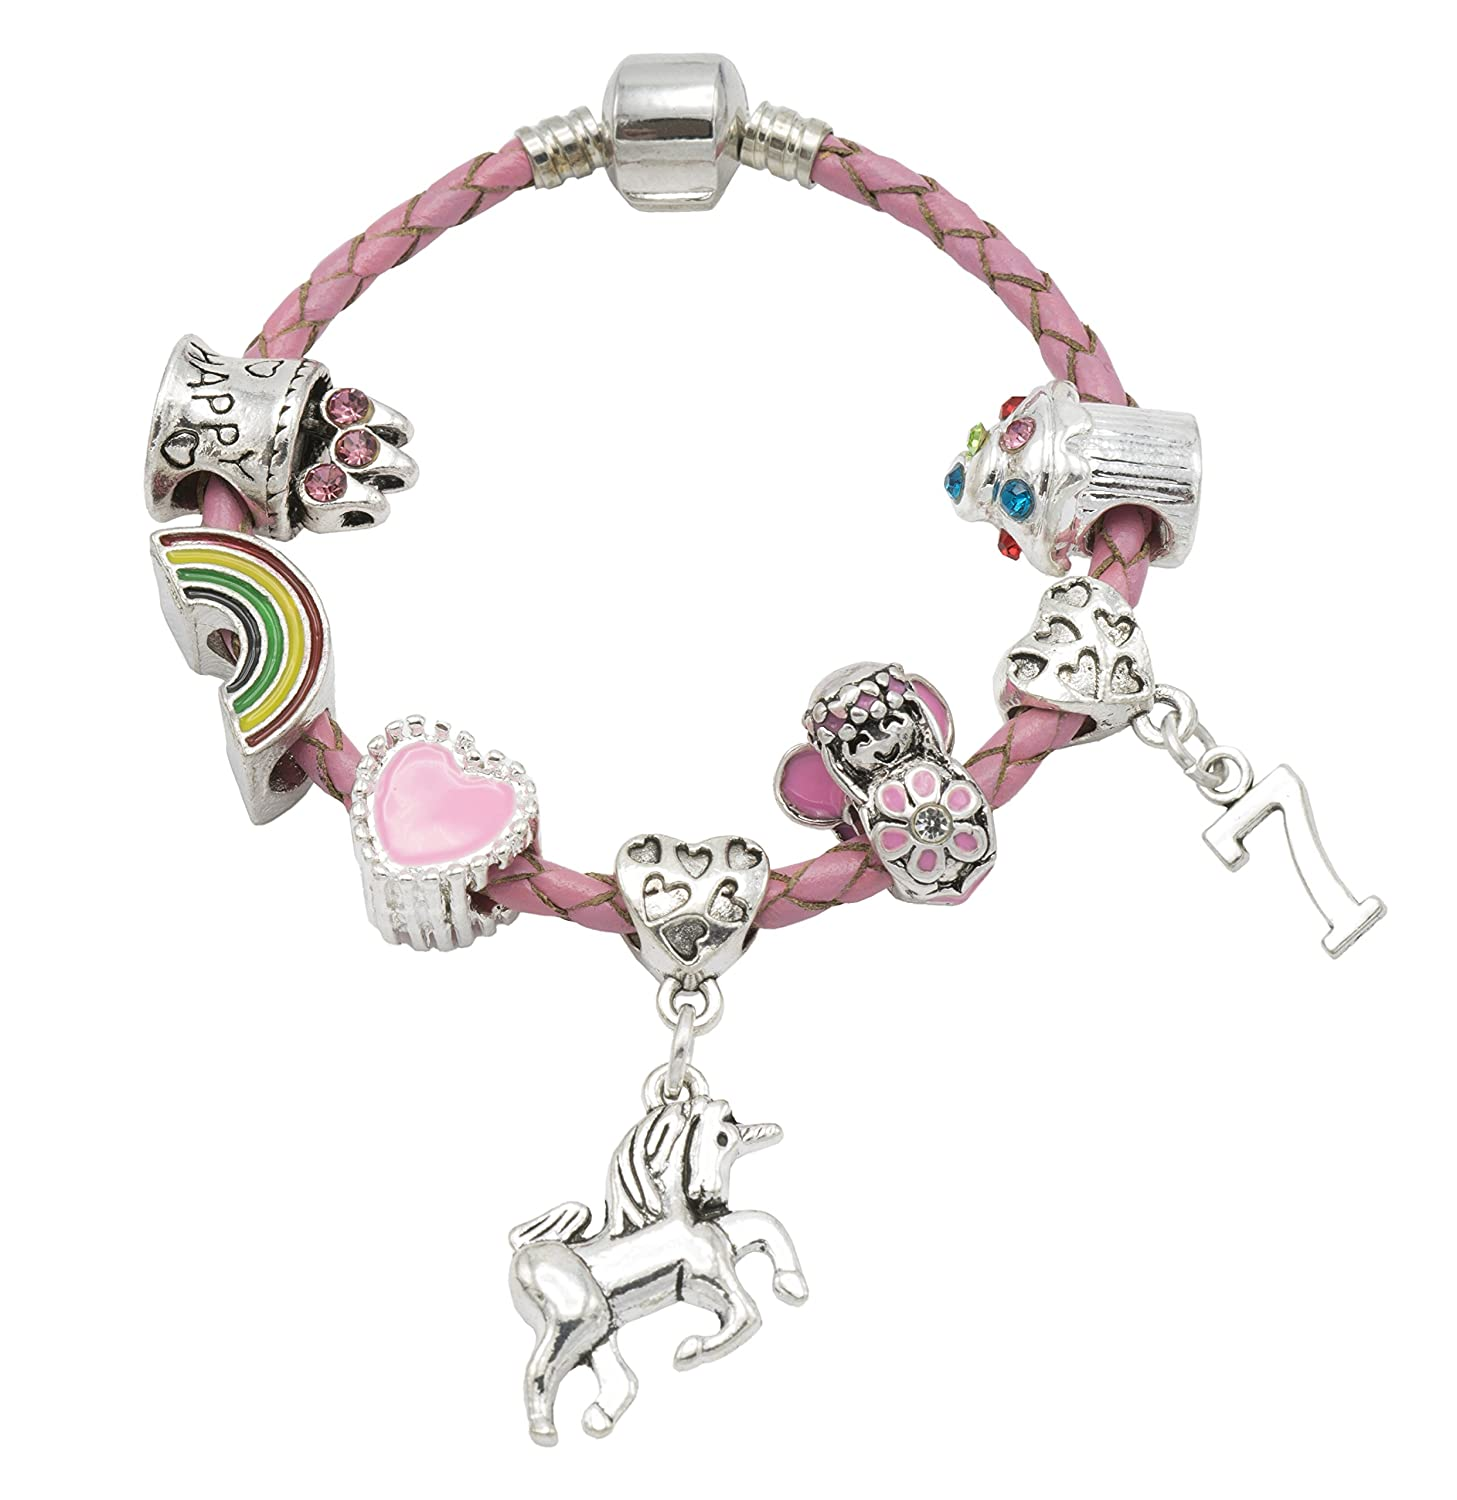 \'May Your Day Be As Magical As A Unicorn\' - Children\'s 7th Birthday Unicorn Bracelet for Girls with Gift Box - Girls Unicorn Jewellery